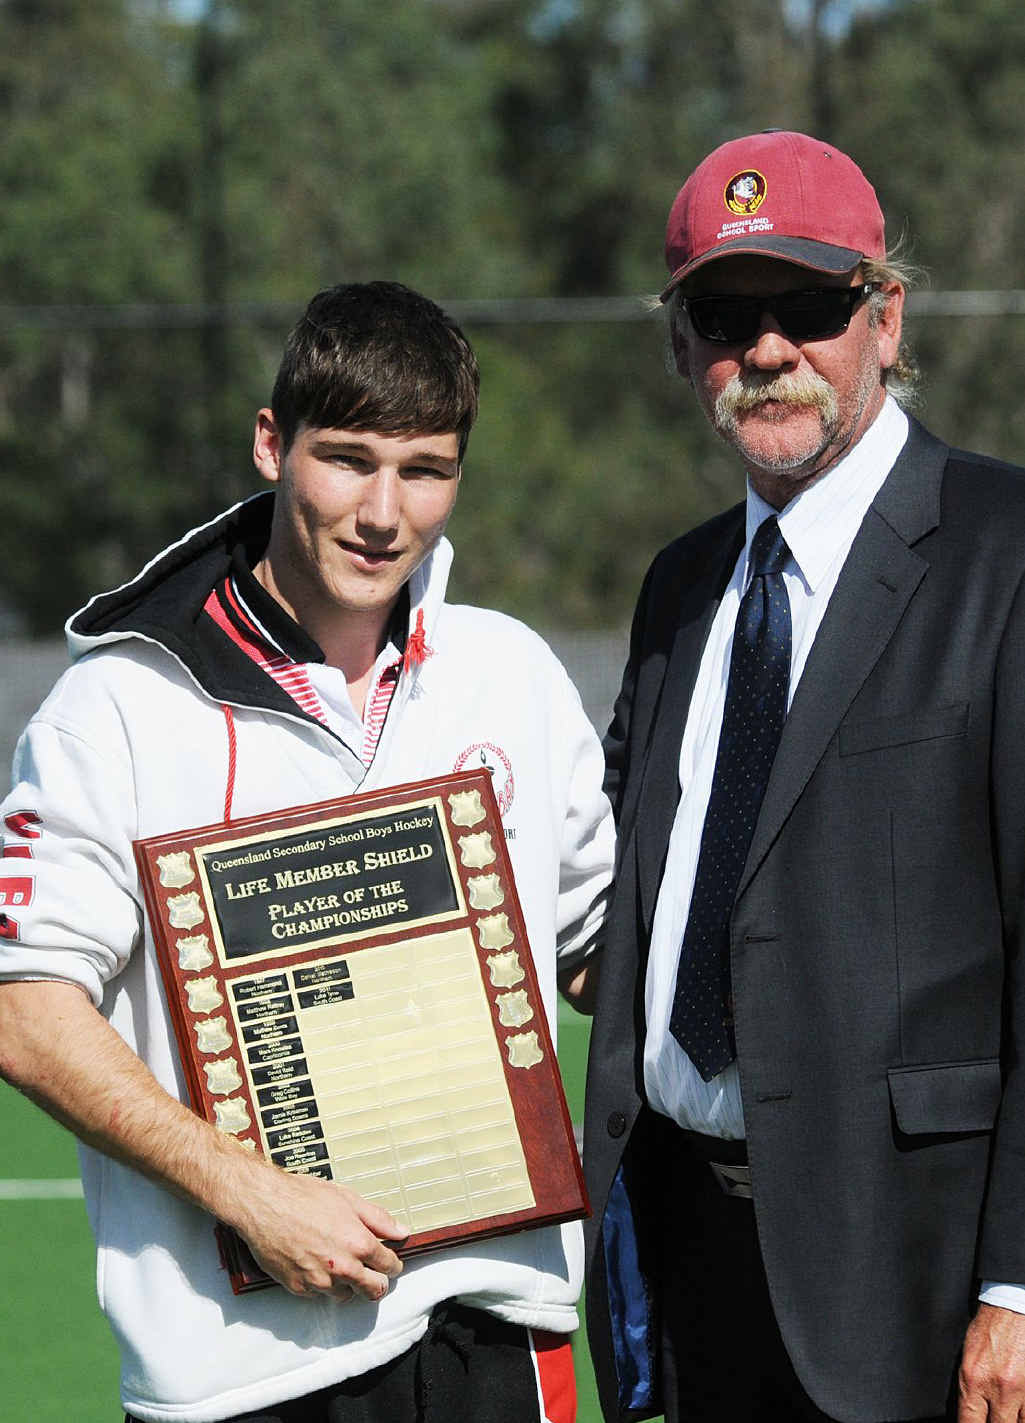 Gympie's Drew Wenzel was named Player of the Championship at the Queensland hockey titles. He is pictured with manager Peter Chatman.